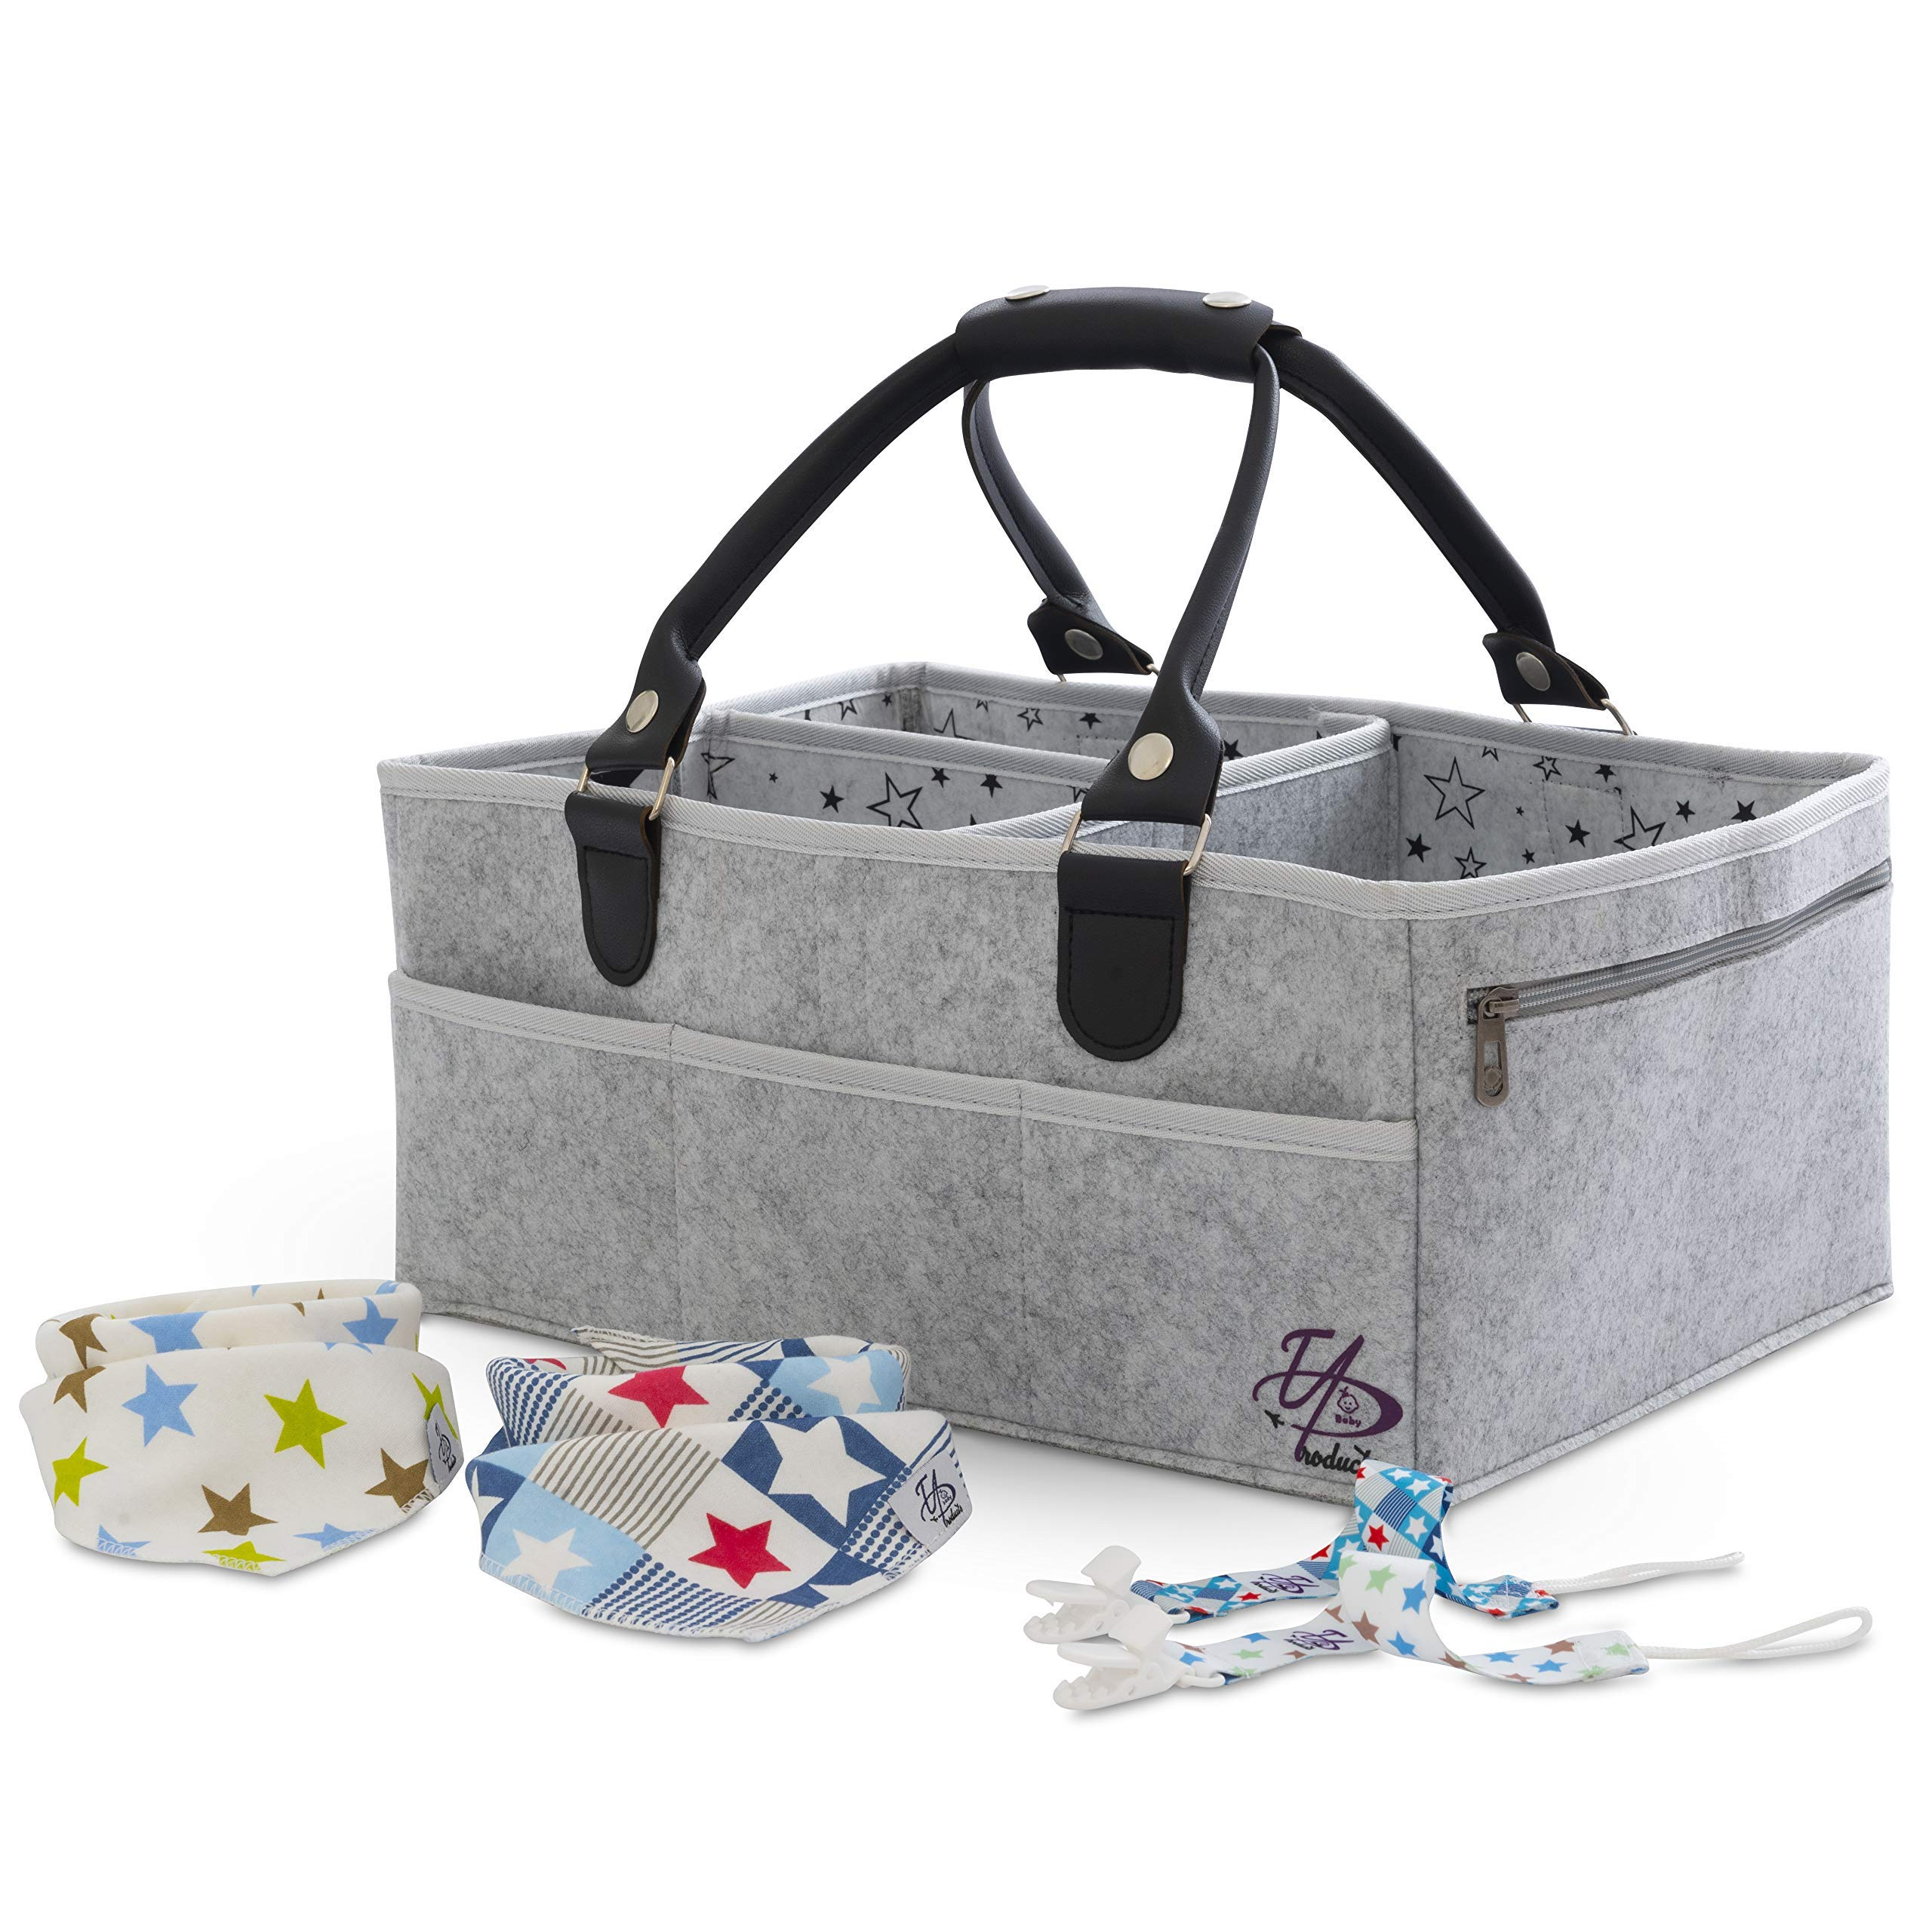 Baby Diaper Caddy Organizer Bag for Changing Table / Storage / Portable Nursery Basket | X-Large (16x11x7 inches) | 3 Inner sections 8 Pockets | Sturdy | Unisex | Gray | Bonus 2 Bibs, 2 Pacifier Clips by EAProducts